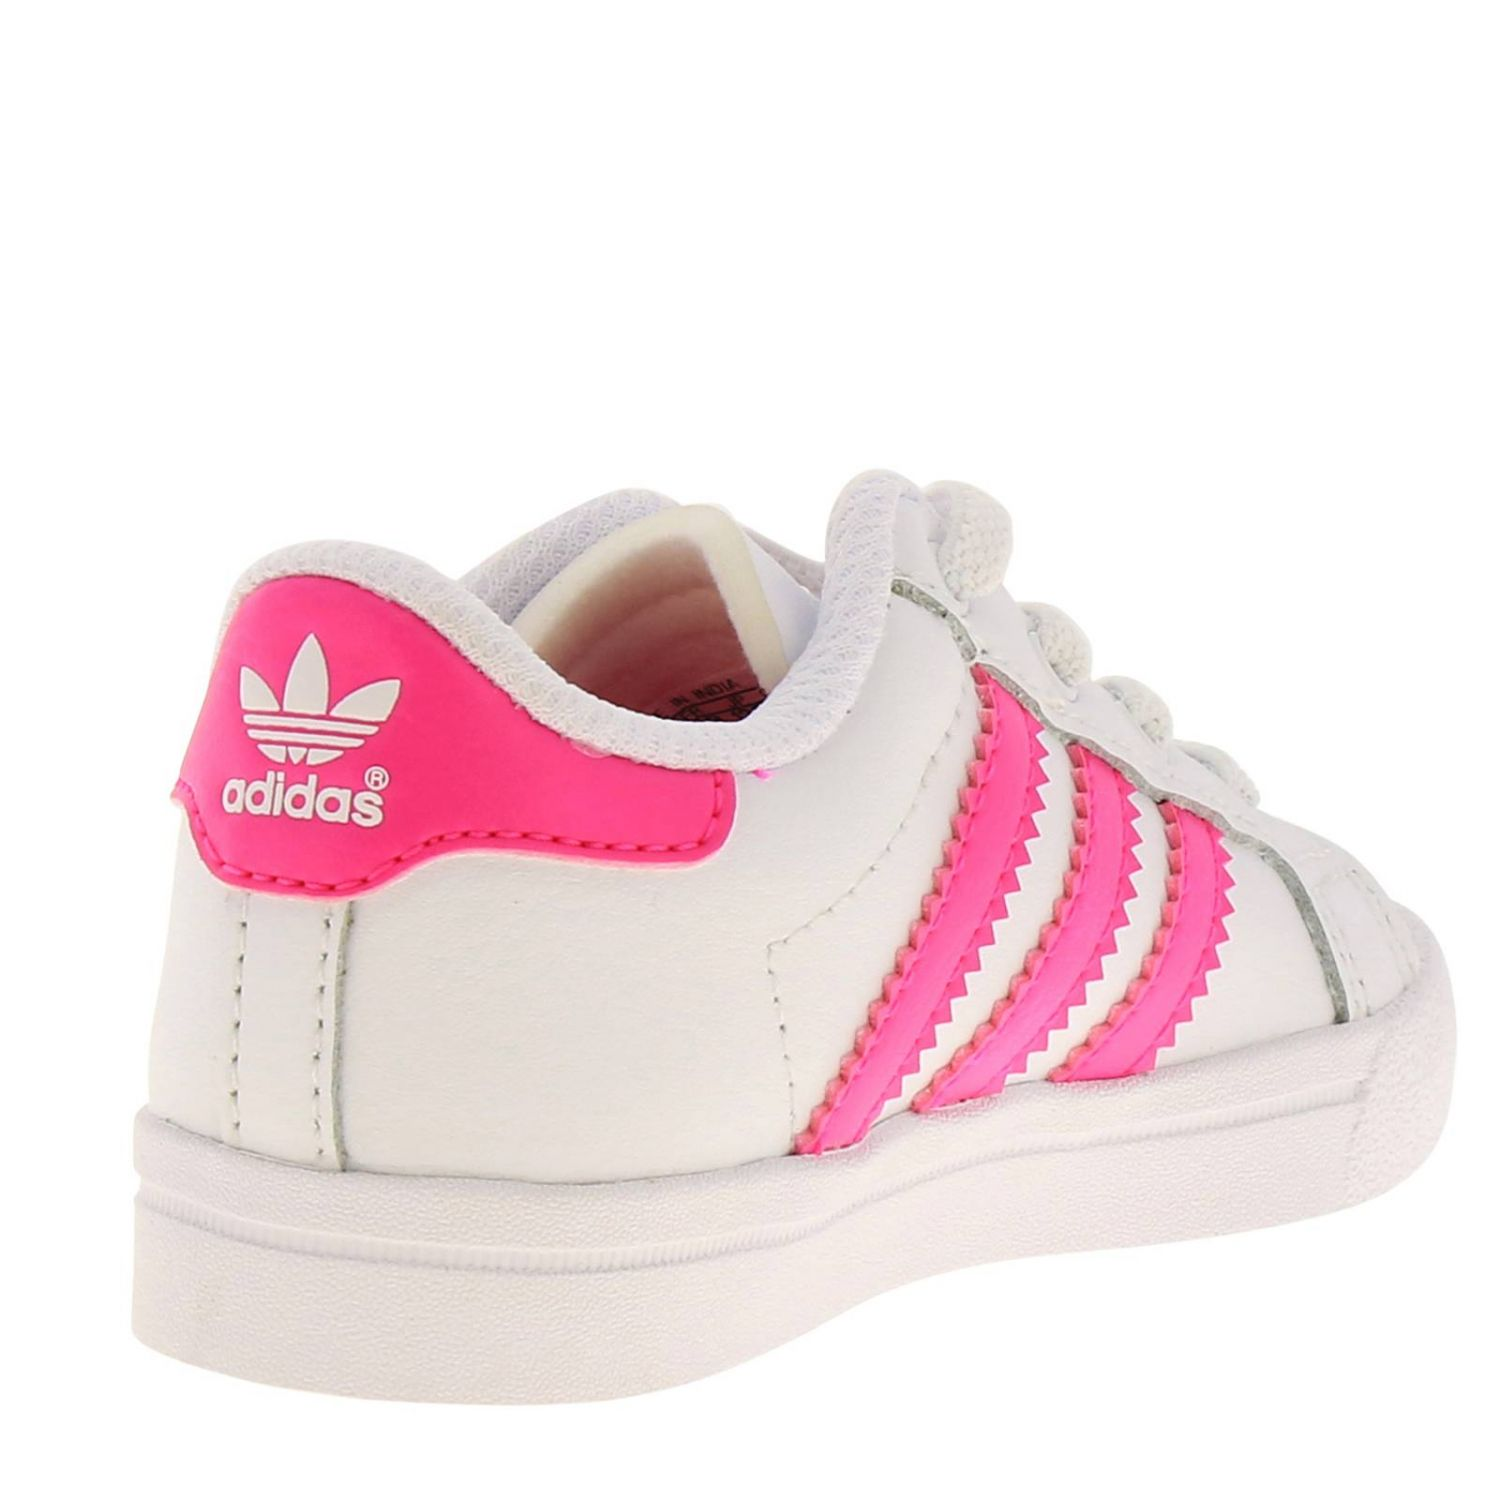 Shoes Adidas Originals: Adidas Originals Coast star sneakers in leather with contrasting bands white 4